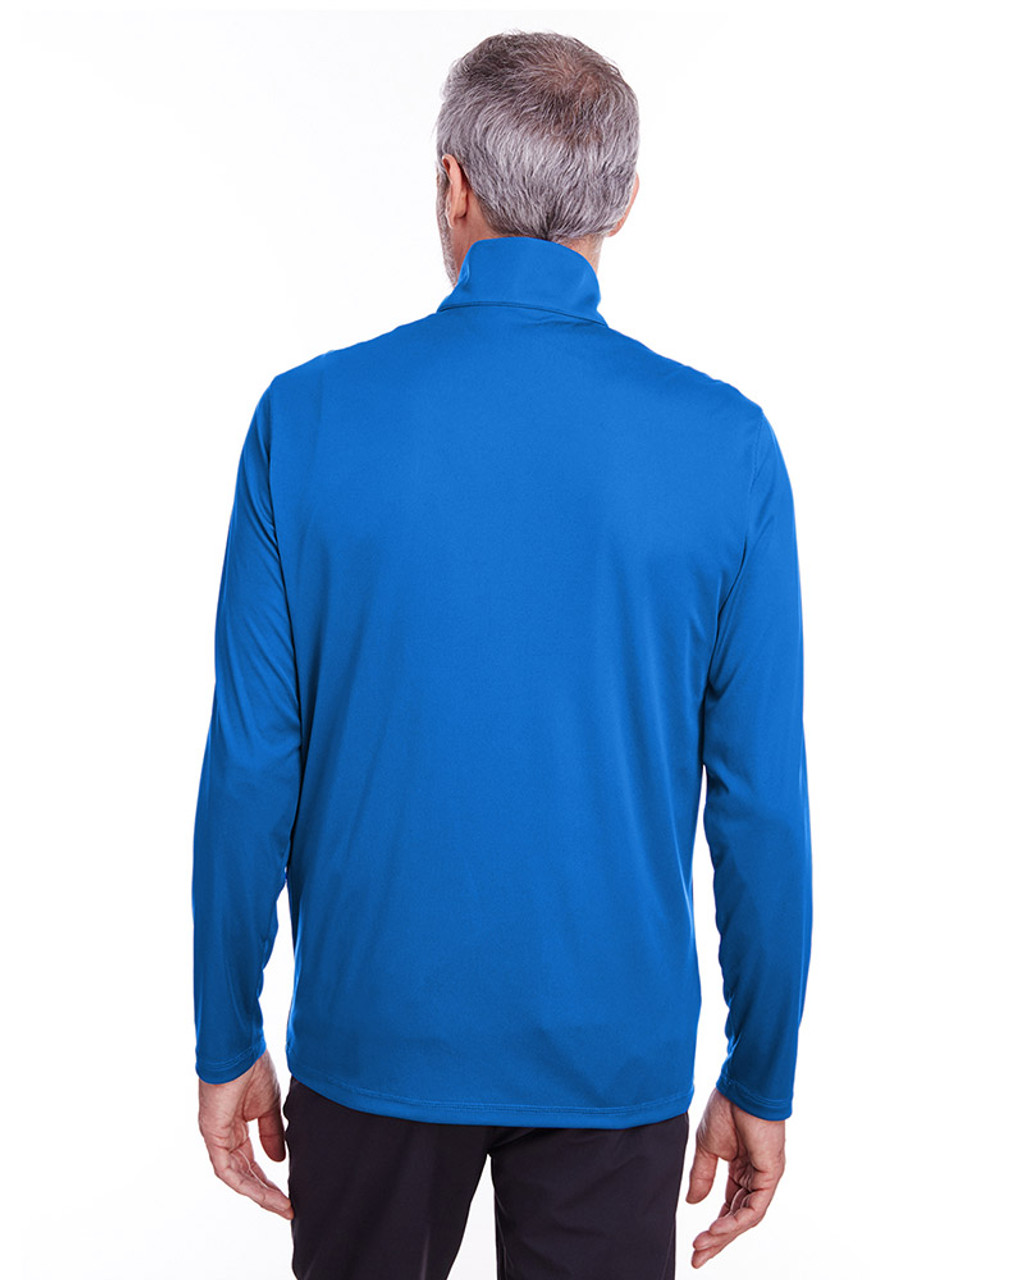 Lapis Blue - back, 596807 Puma Golf Men's Icon Quarter-Zip Shirt | Blankclothing.ca